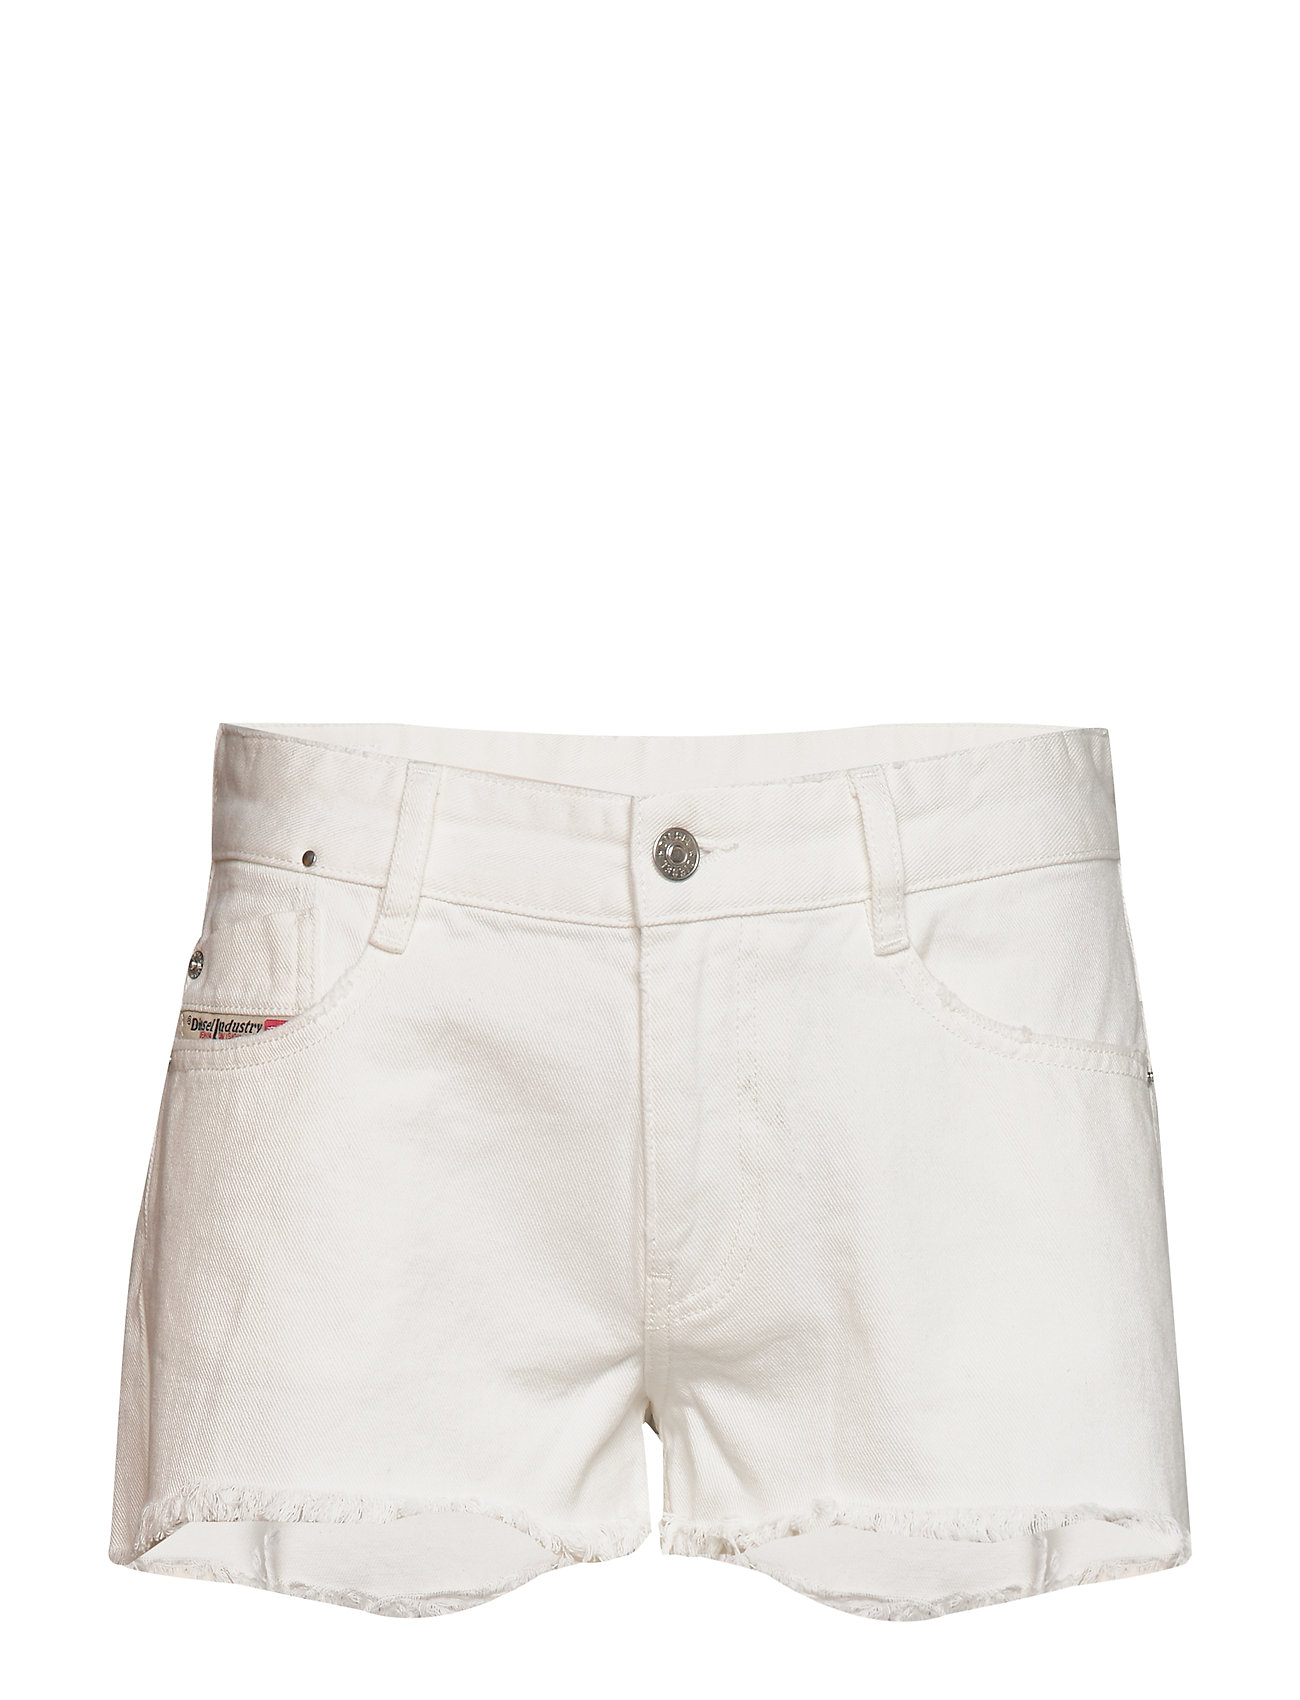 Diesel Women DE-RIFTY SHORTS - BRIGHT WHITE